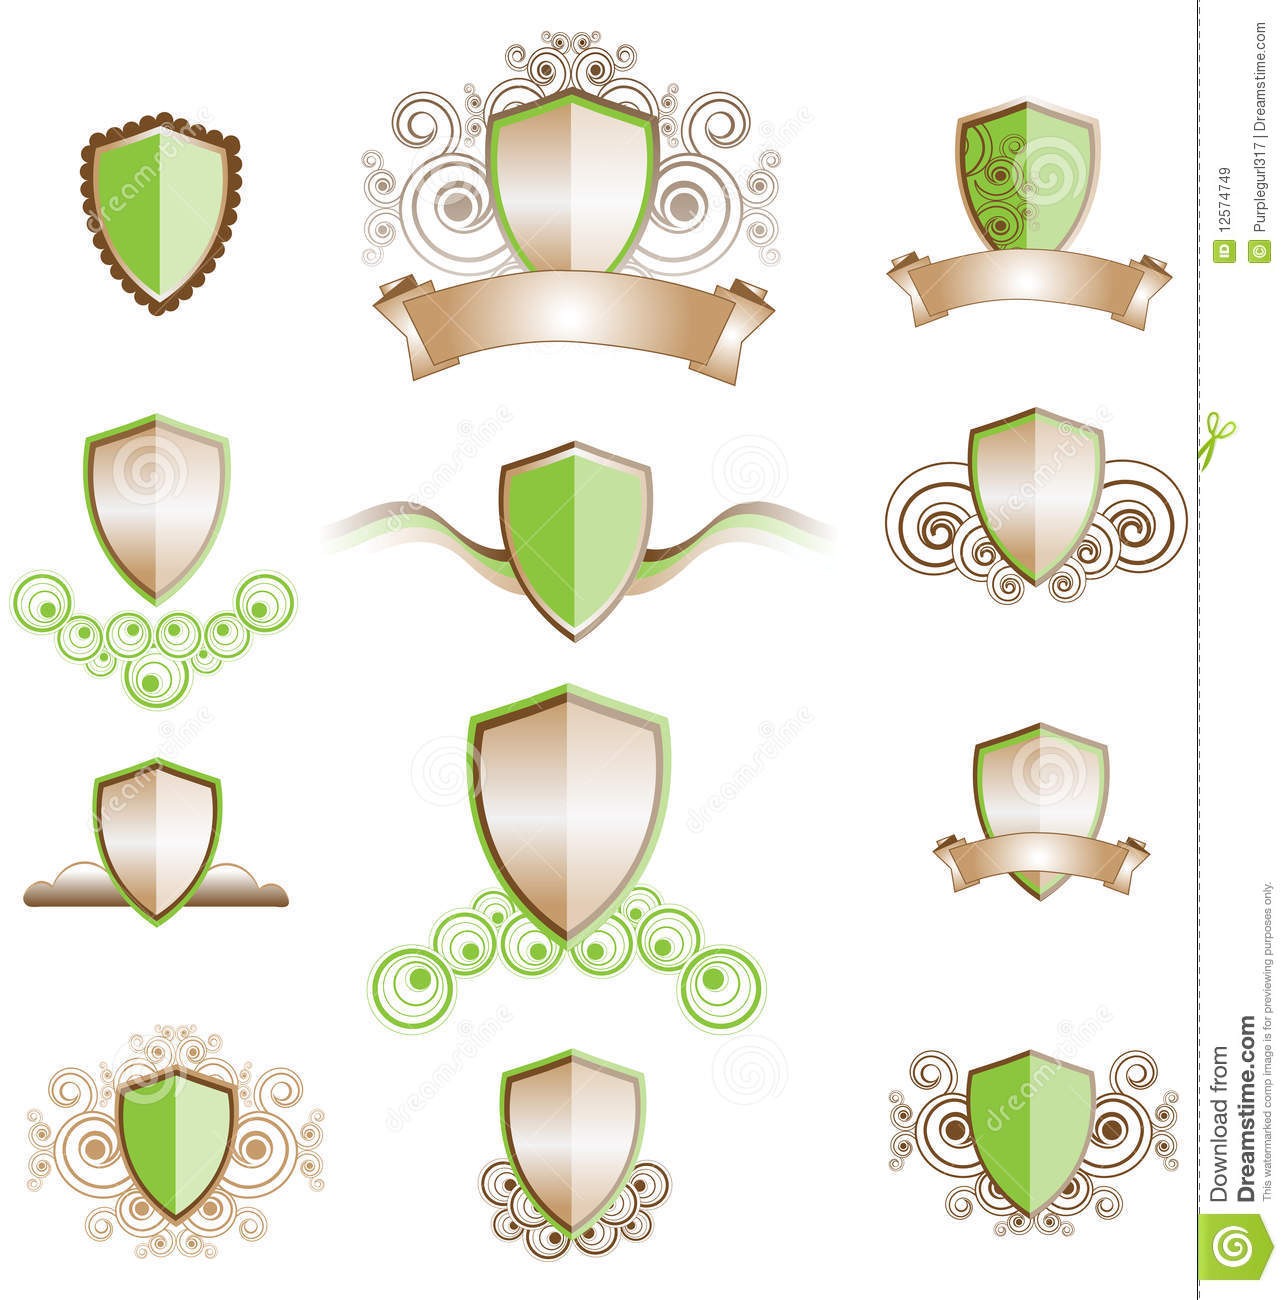 A Set Of Shield Designs Royalty Free Stock Images